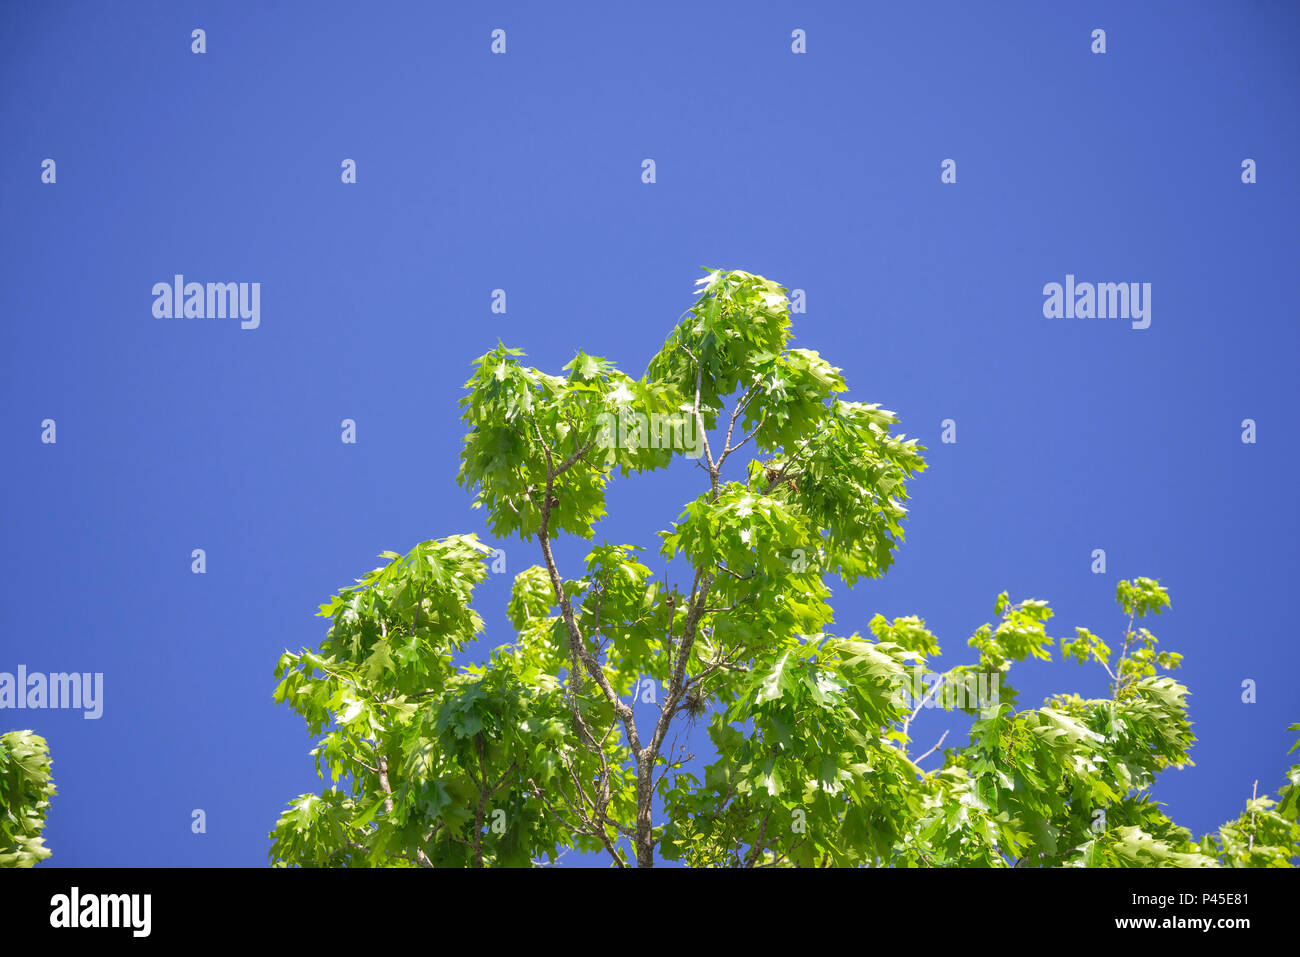 New spring growth on an oak tree in North Central Florida. - Stock Image